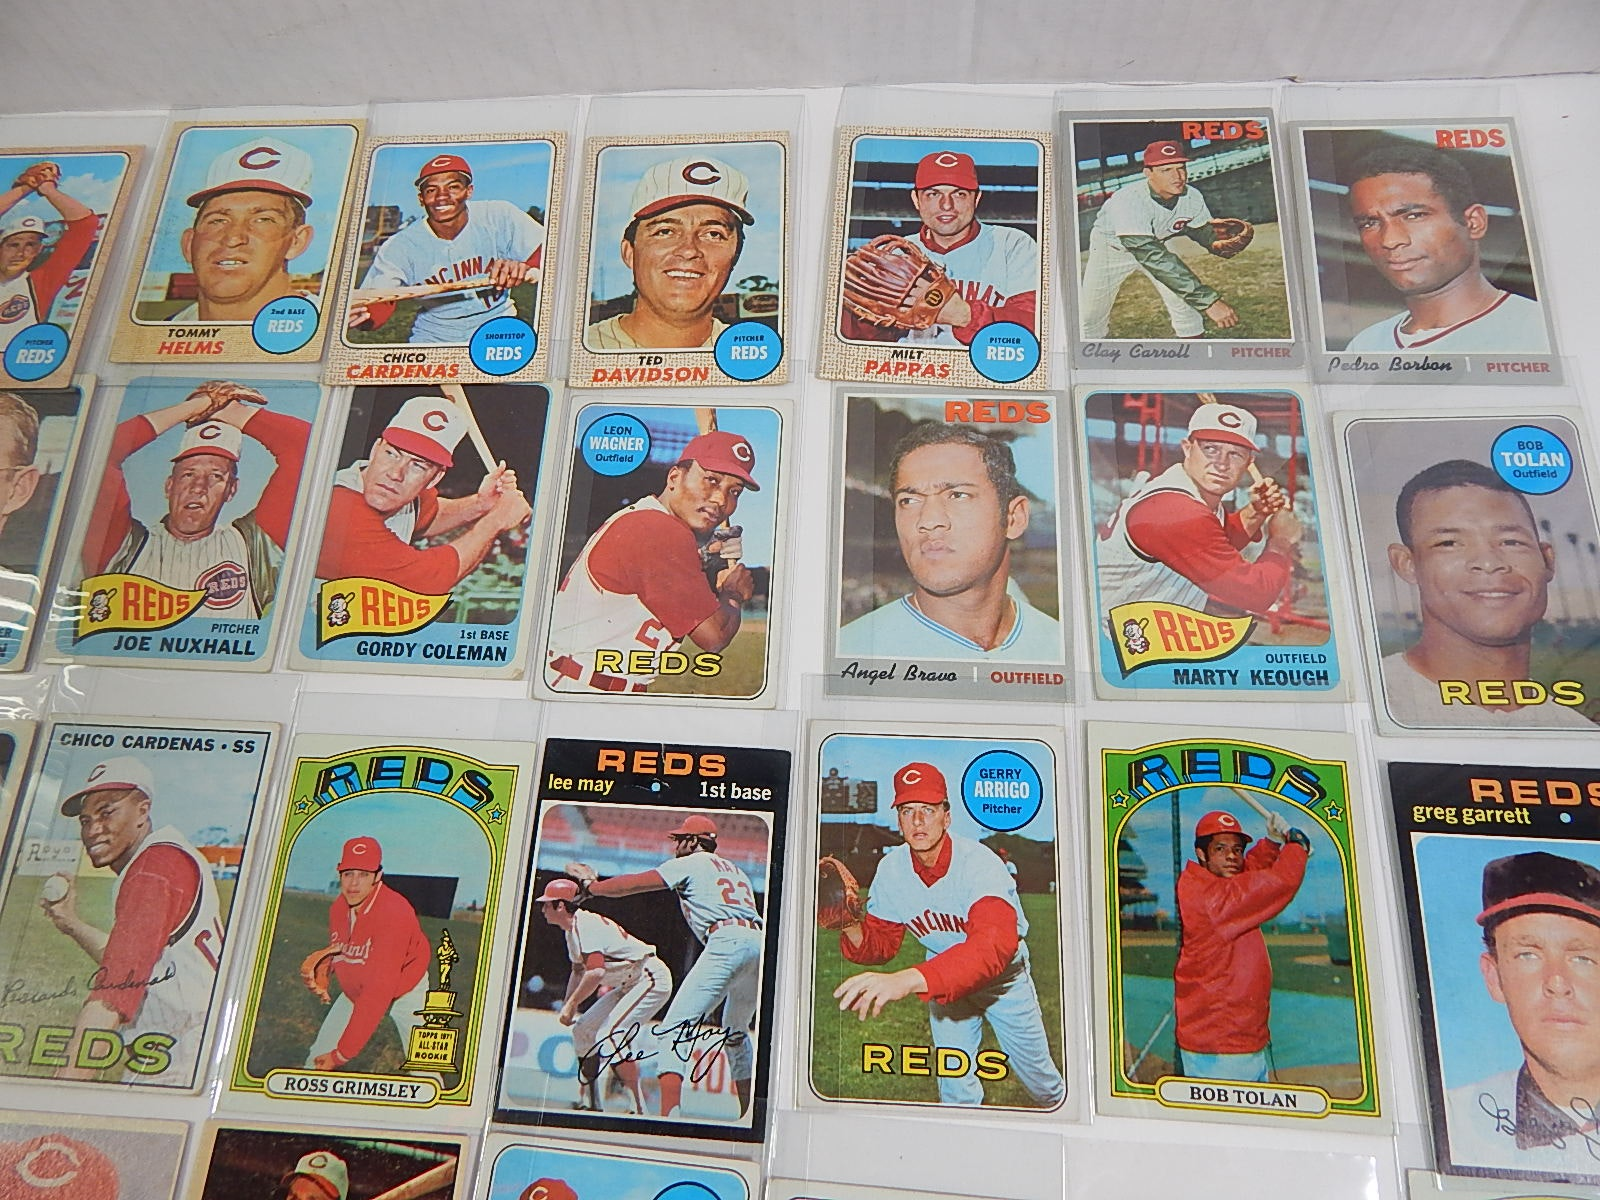 Cincinnati Reds Card Collection from 1957 to 1972 - 65 Card Count